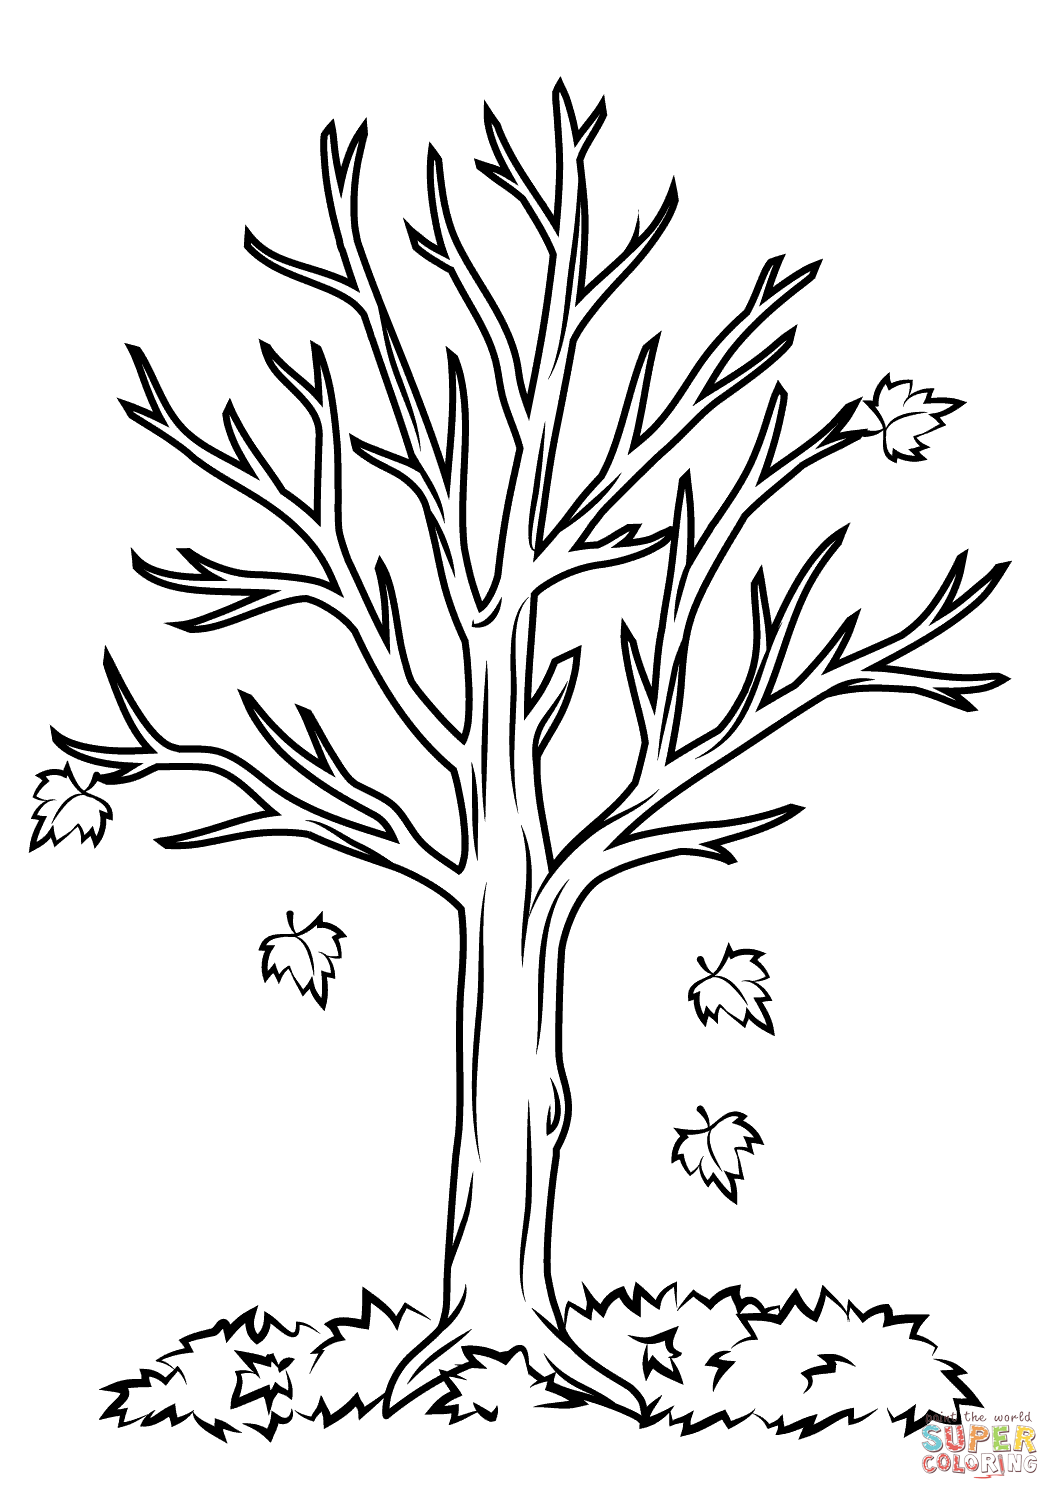 branch coloring page palm branch drawing at getdrawings free download coloring page branch